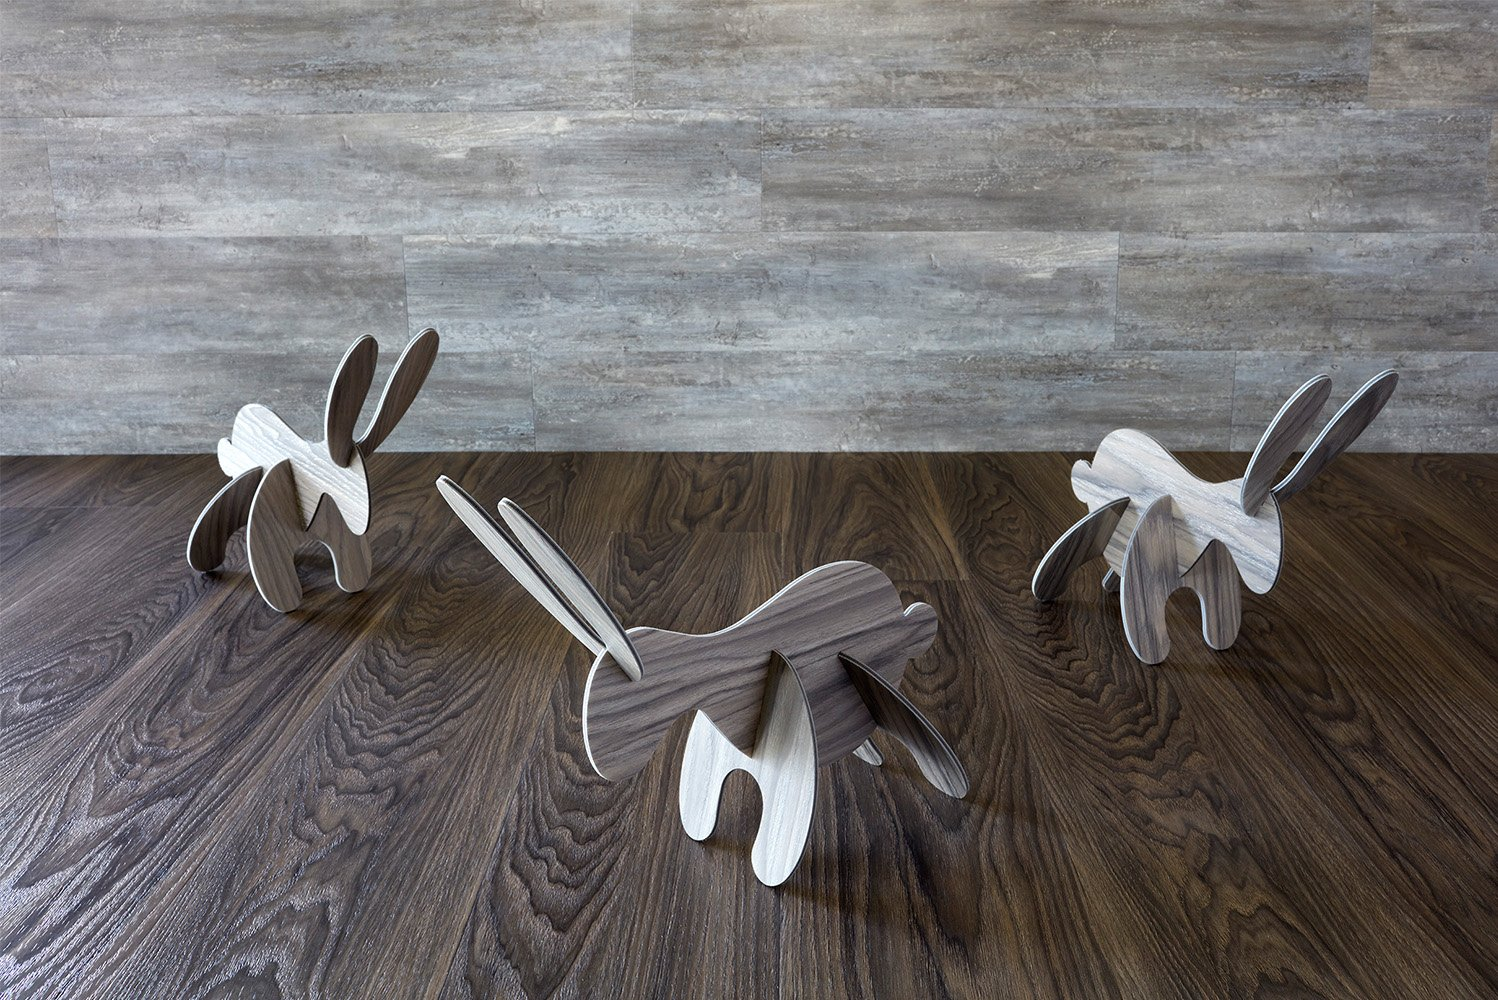 Gerflor USA launched the Creation Living collection, which provides gray and white stain options, as well as wood designs.